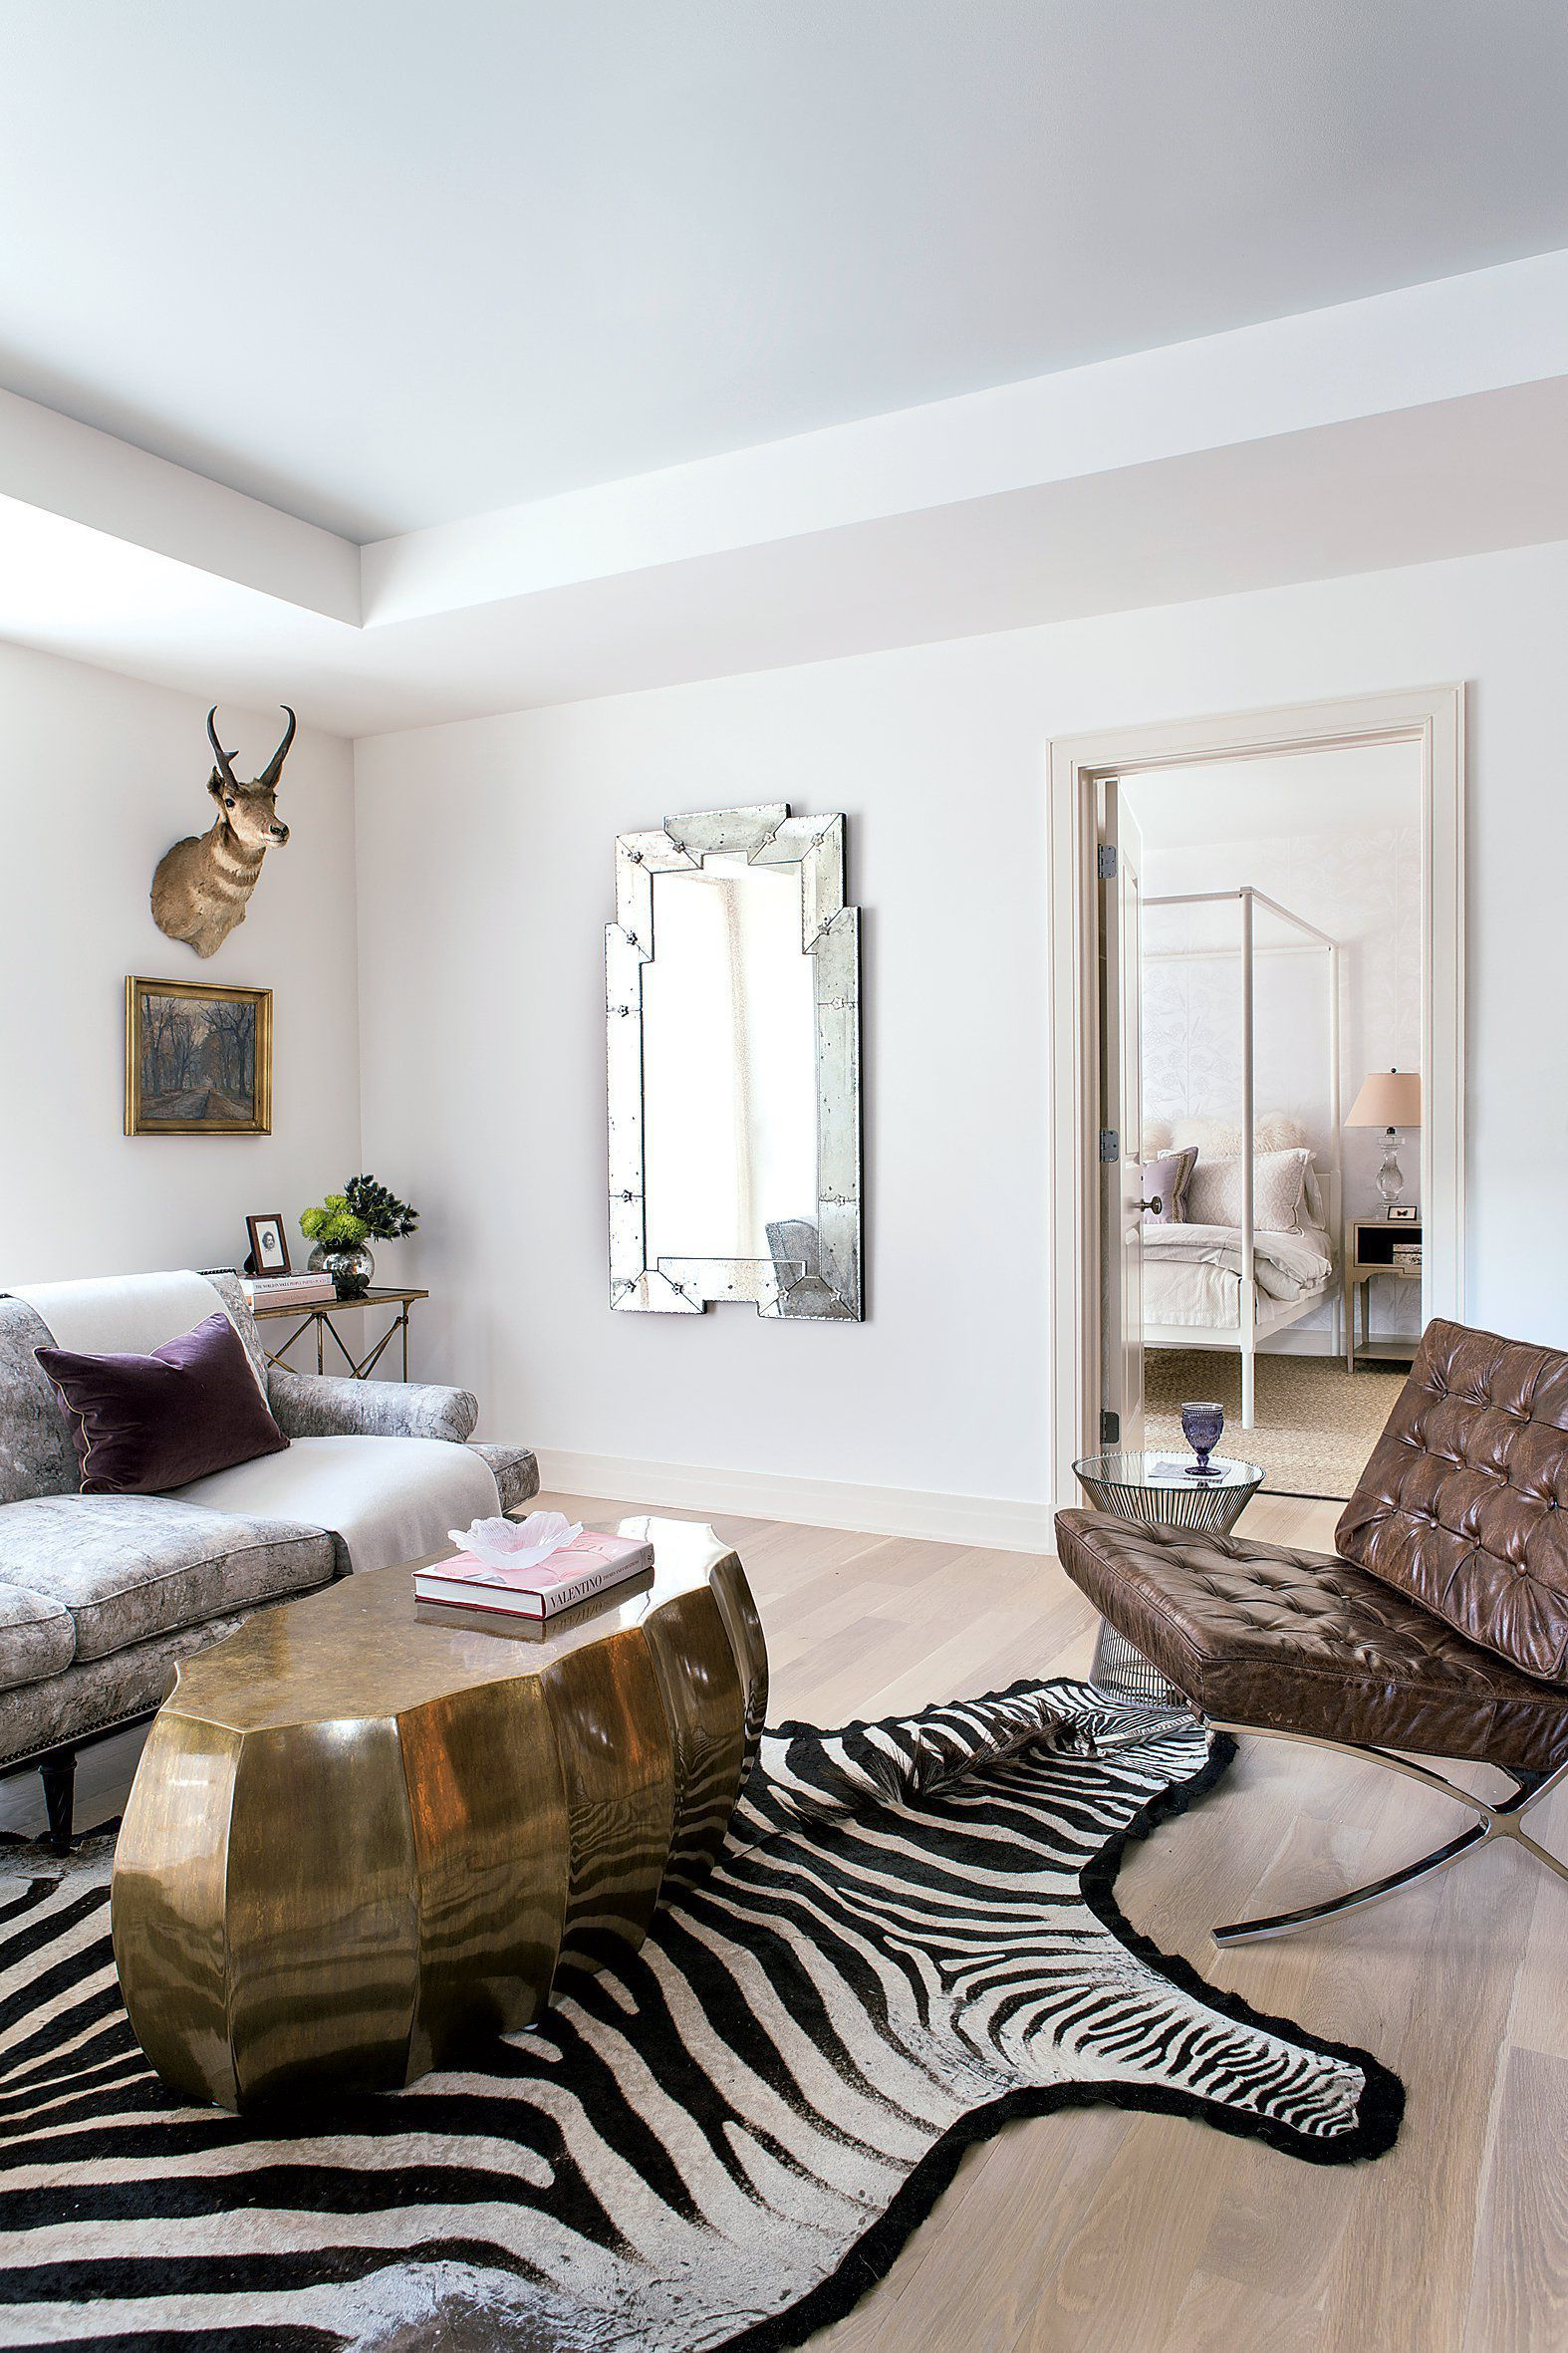 3 Gorgeous Small Spaces That Will Make You Want to Downsize | Small ...